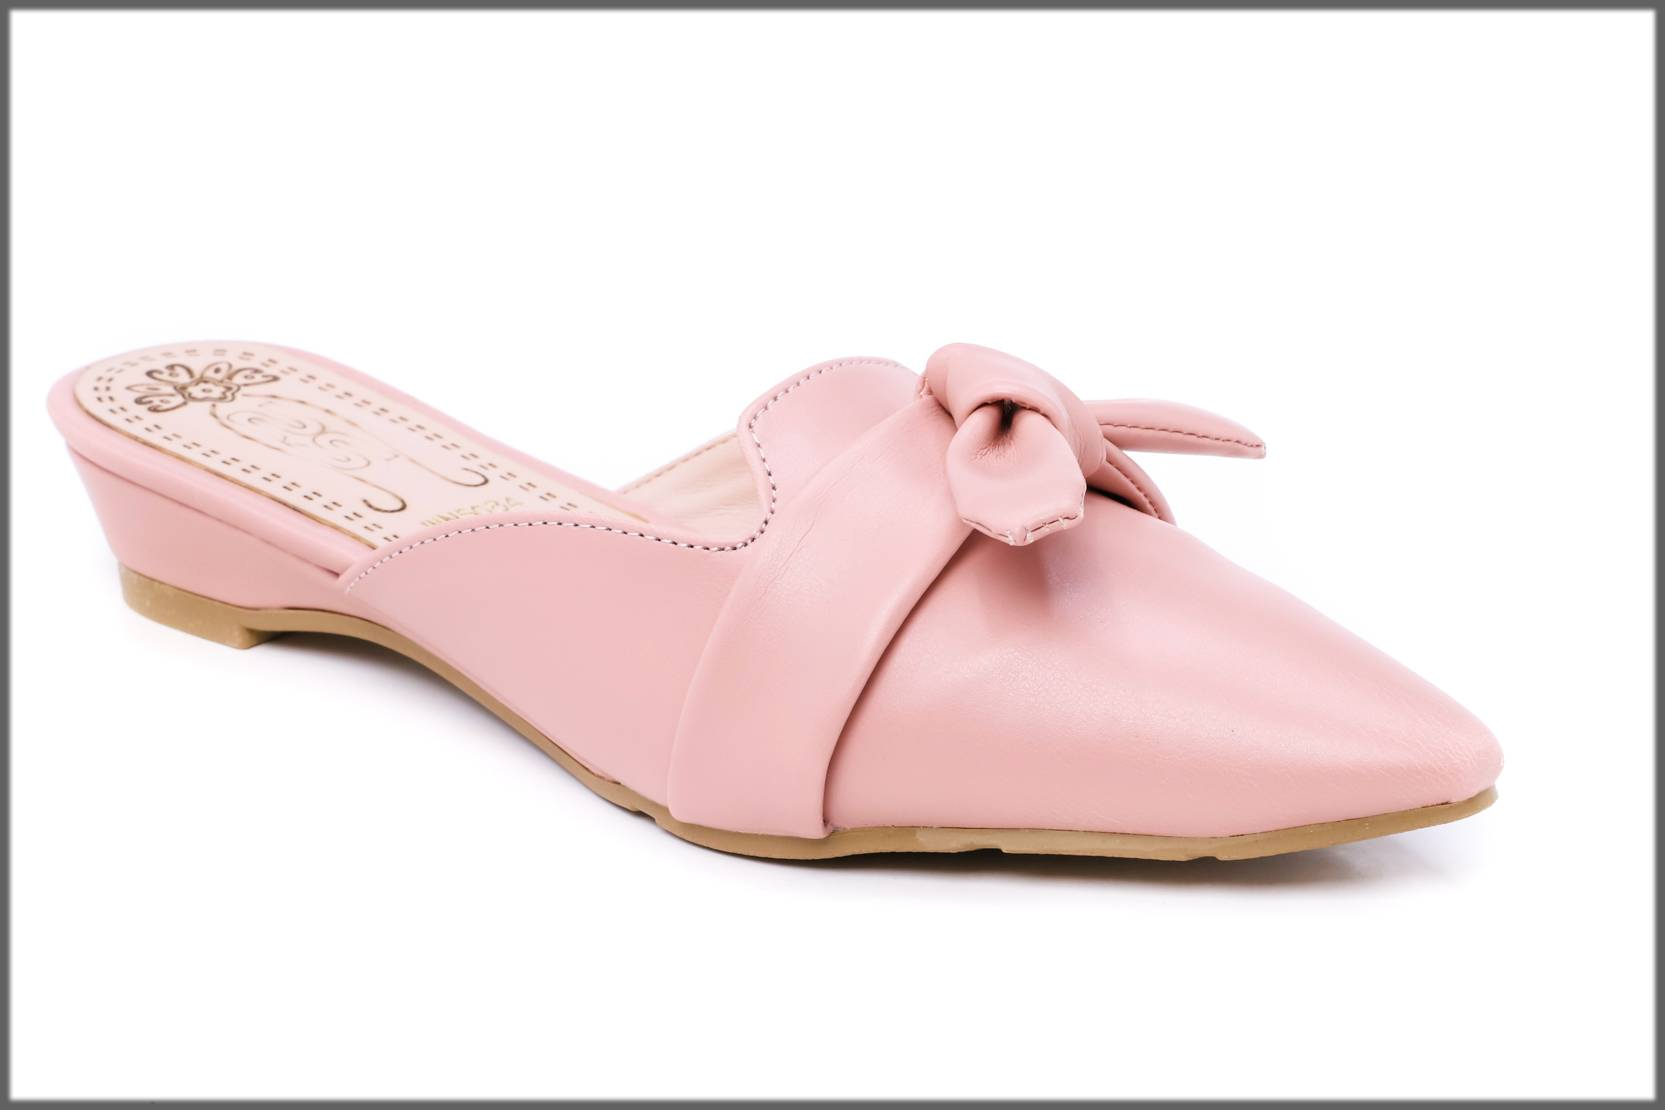 flat back open shoes in pink